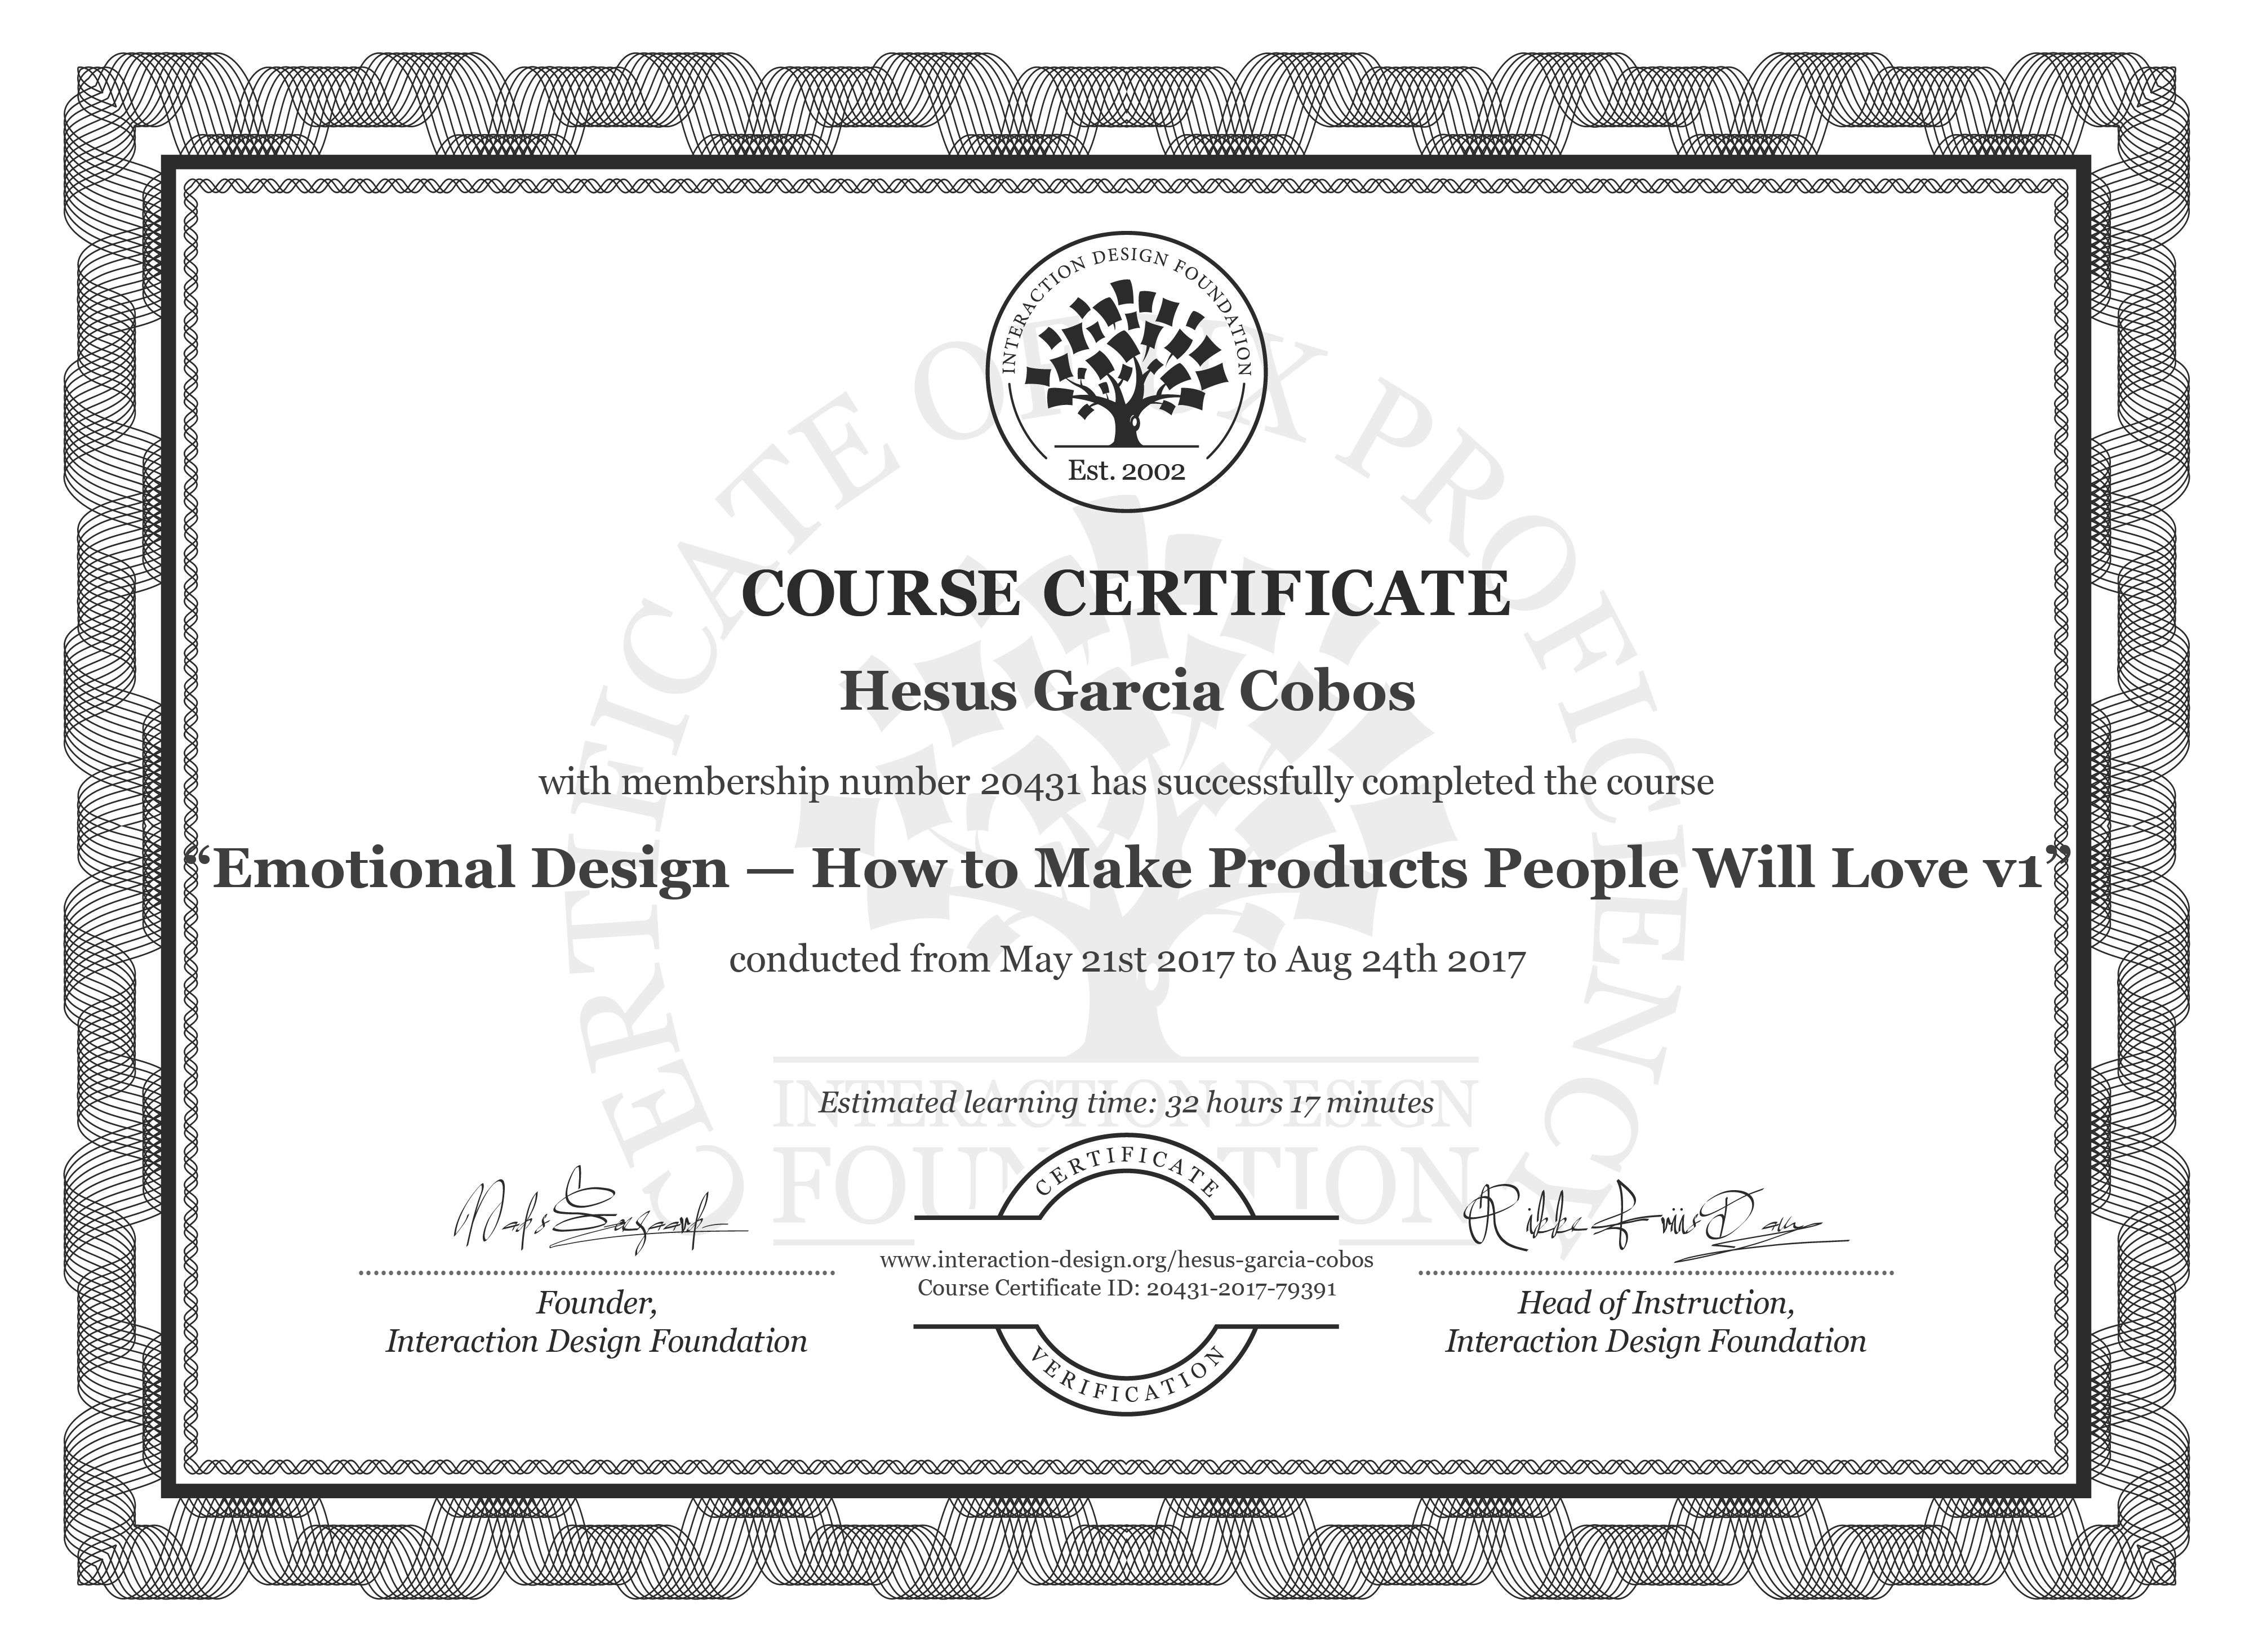 Hesus Garcia Cobos's Course Certificate: Emotional Design: How to Make Products People Will Love